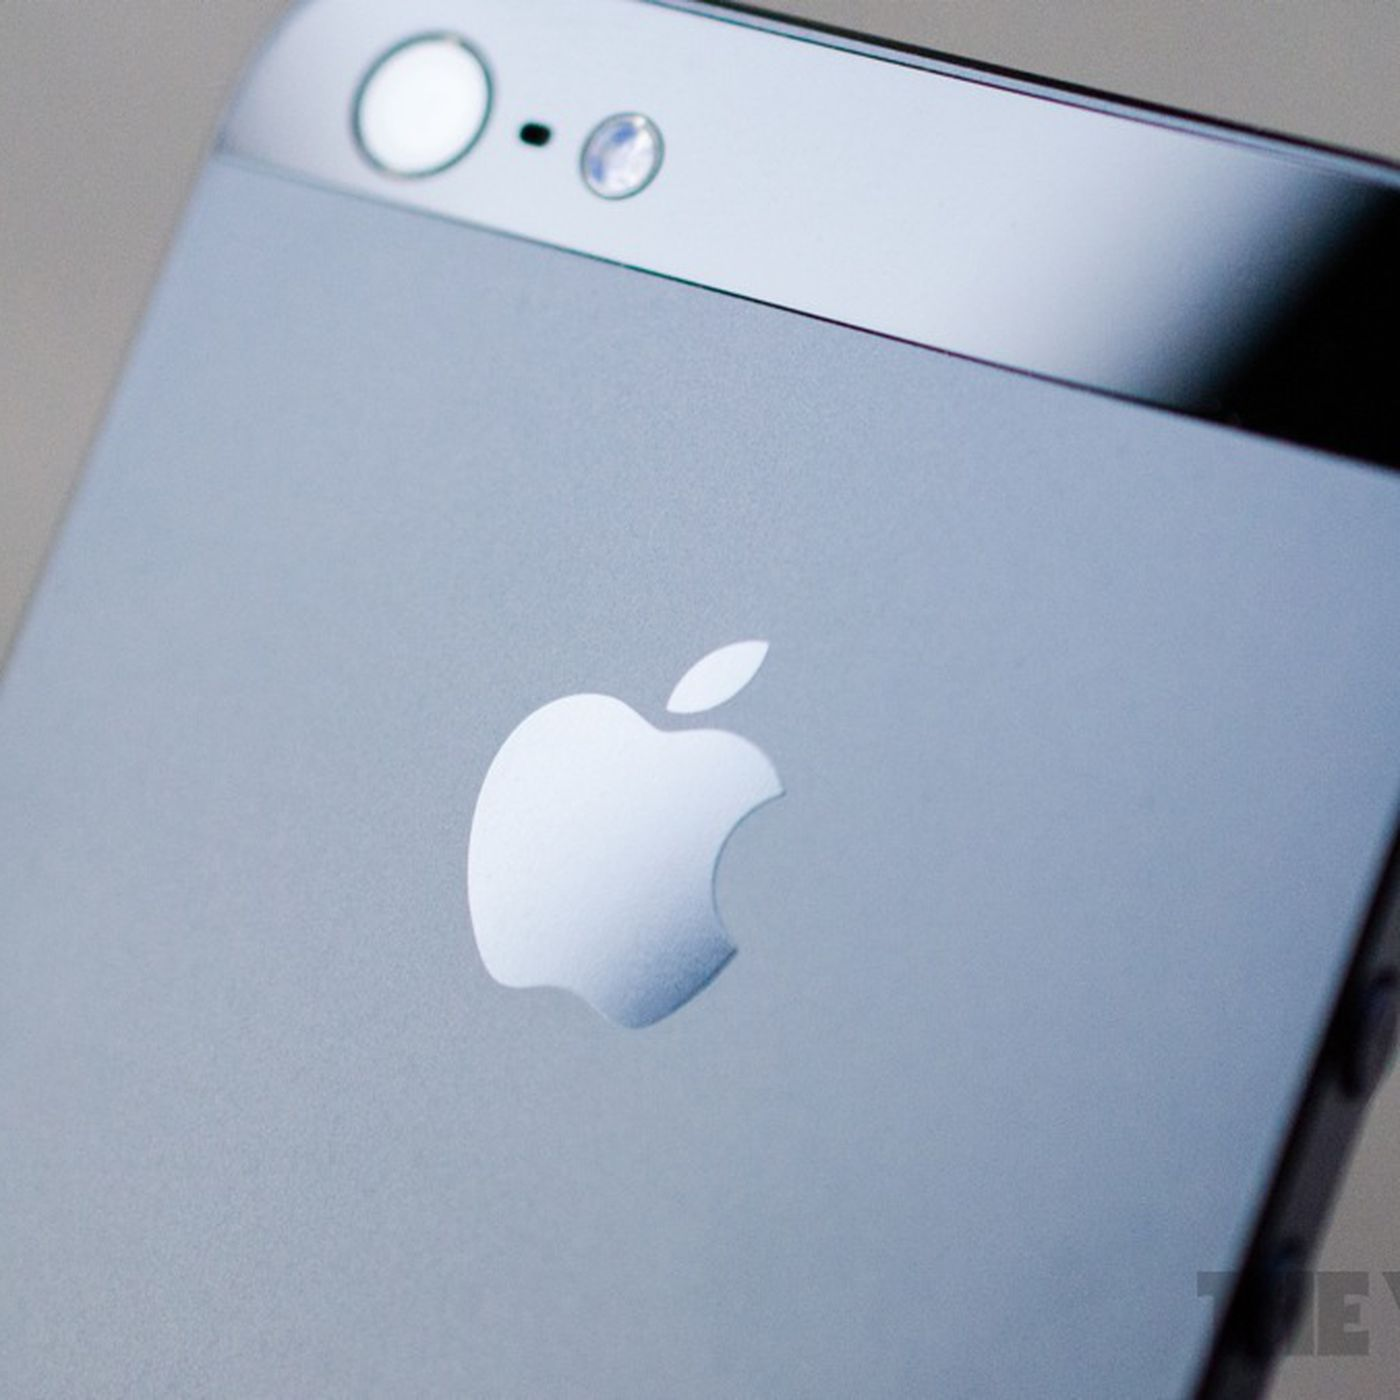 Walmart and Straight Talk to offer prepaid iPhone 4 and 5